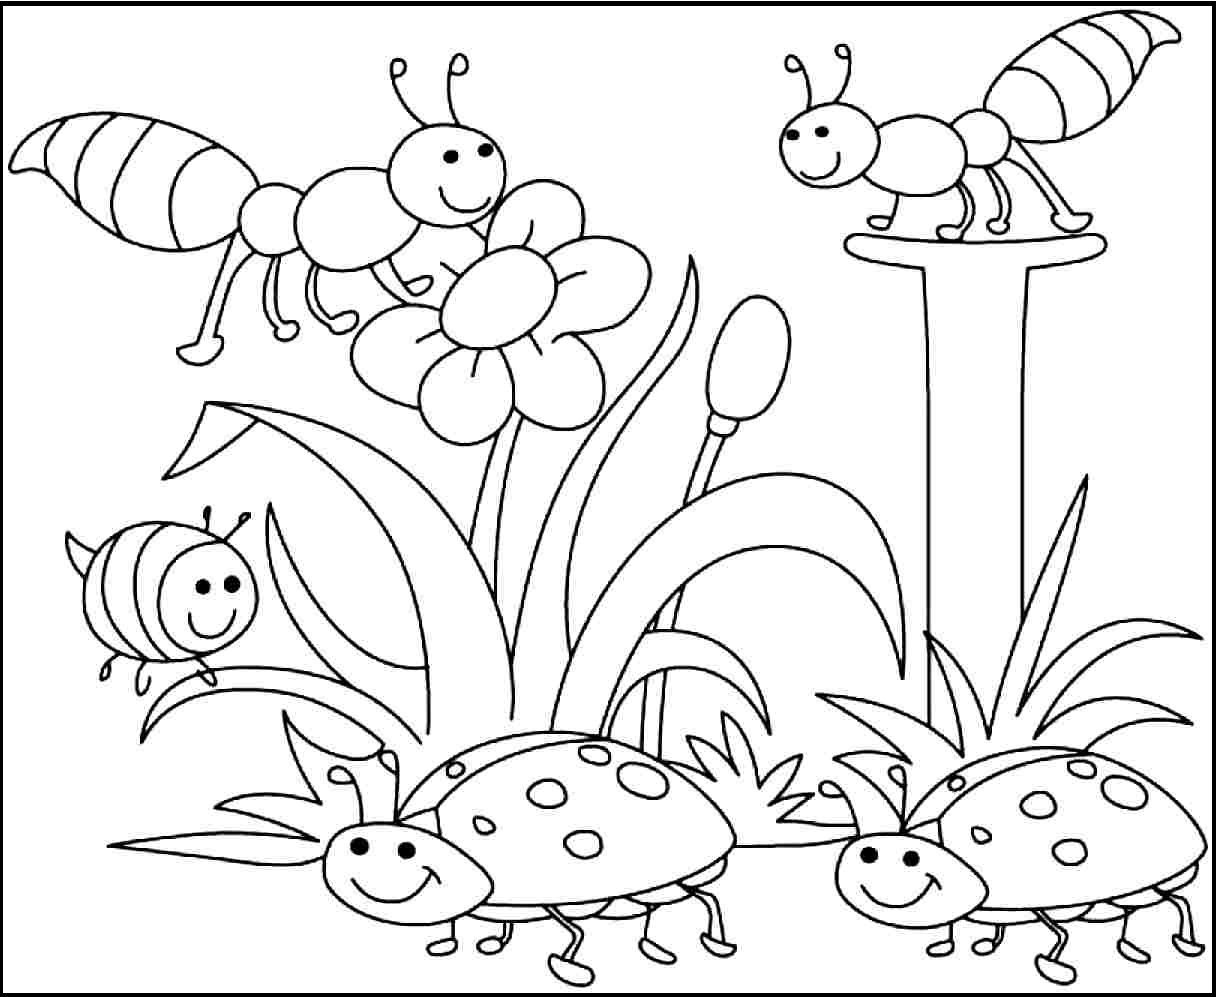 Insects Pleased With Spring Day Coloring Pages For Kids Printable